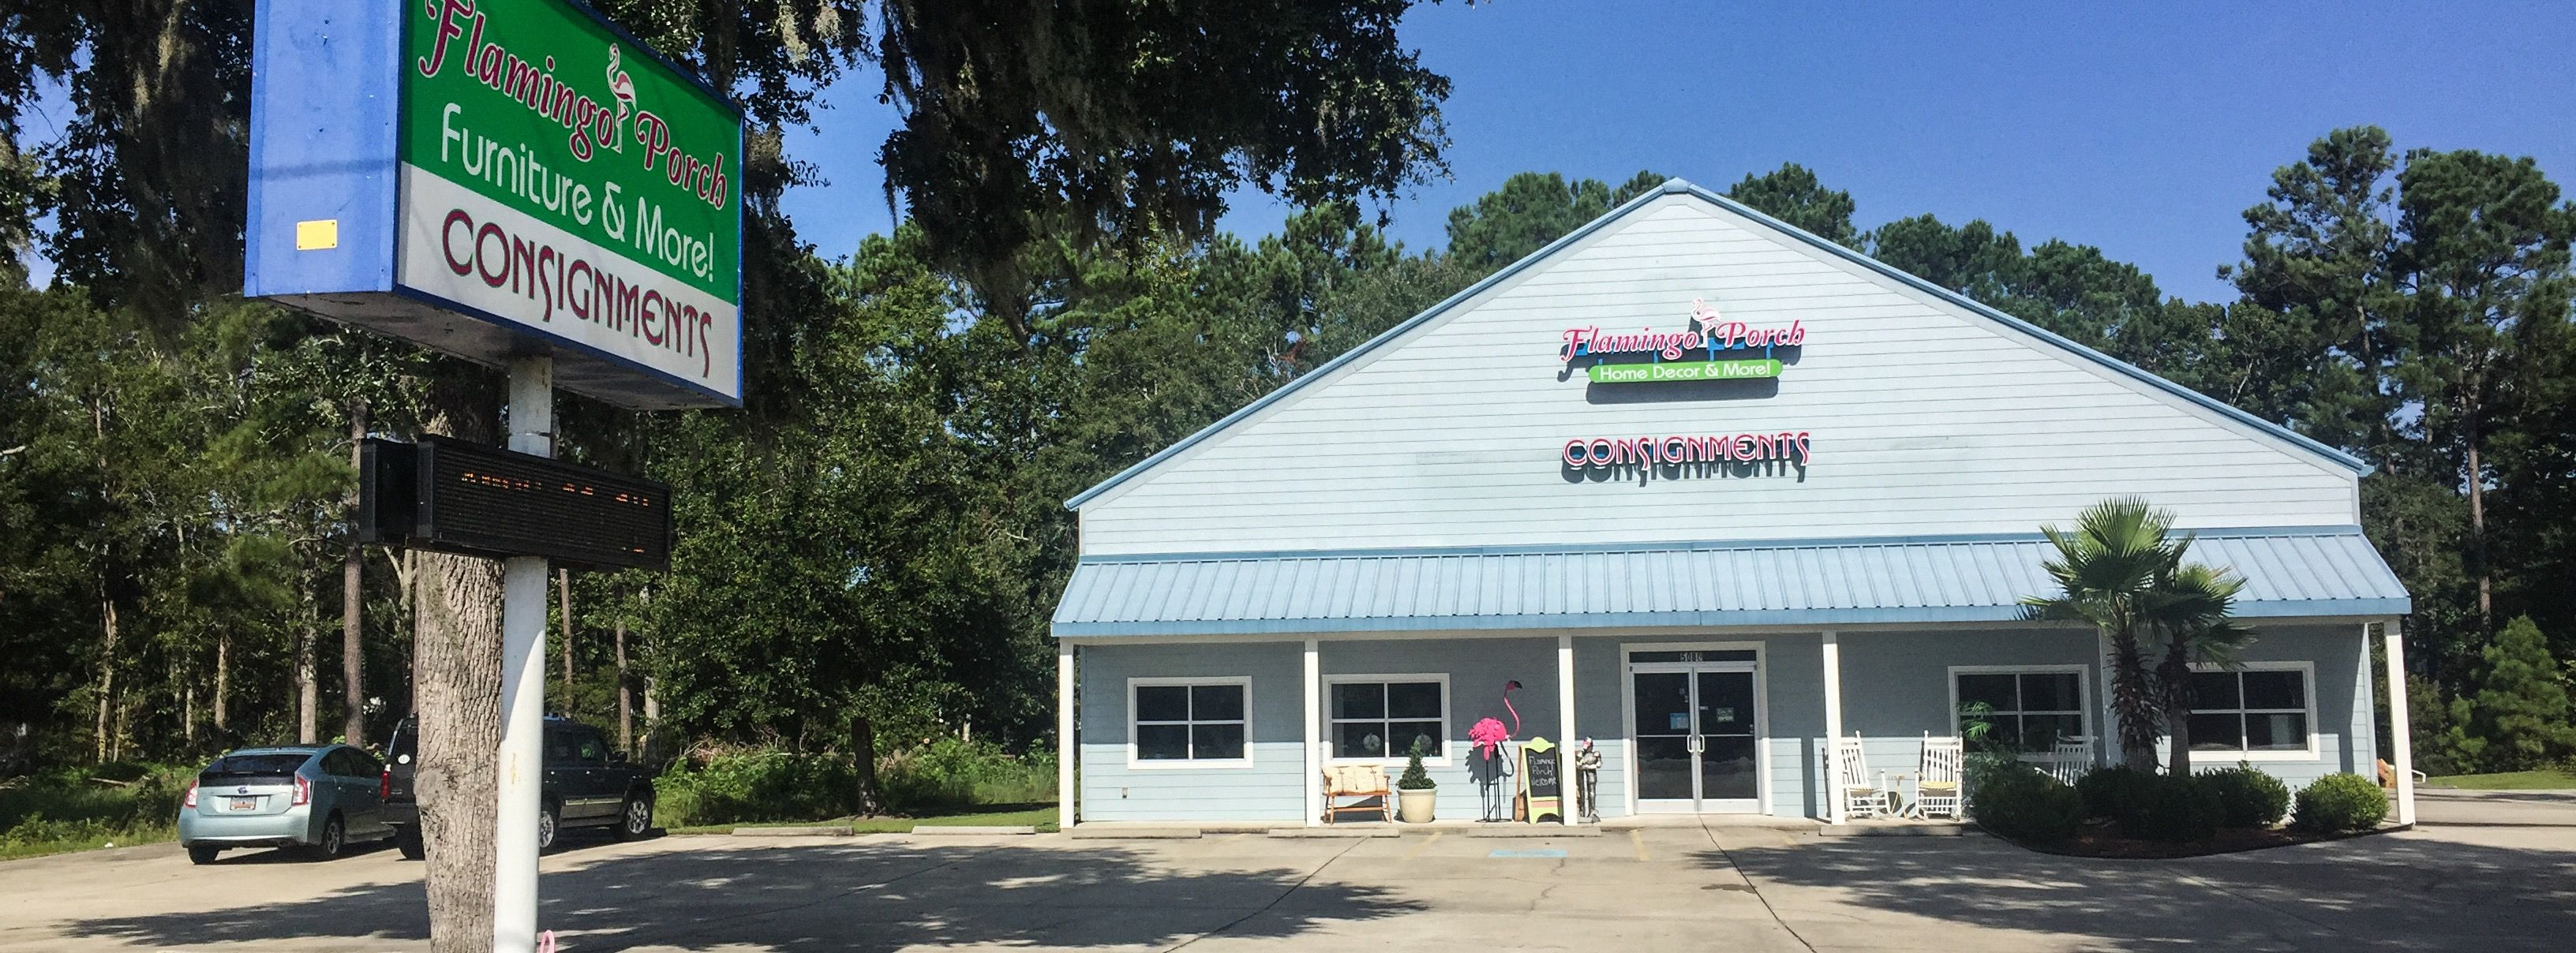 Flamingo Porch Consignment, Located In Murrells Inlet, Sc Has Relocated